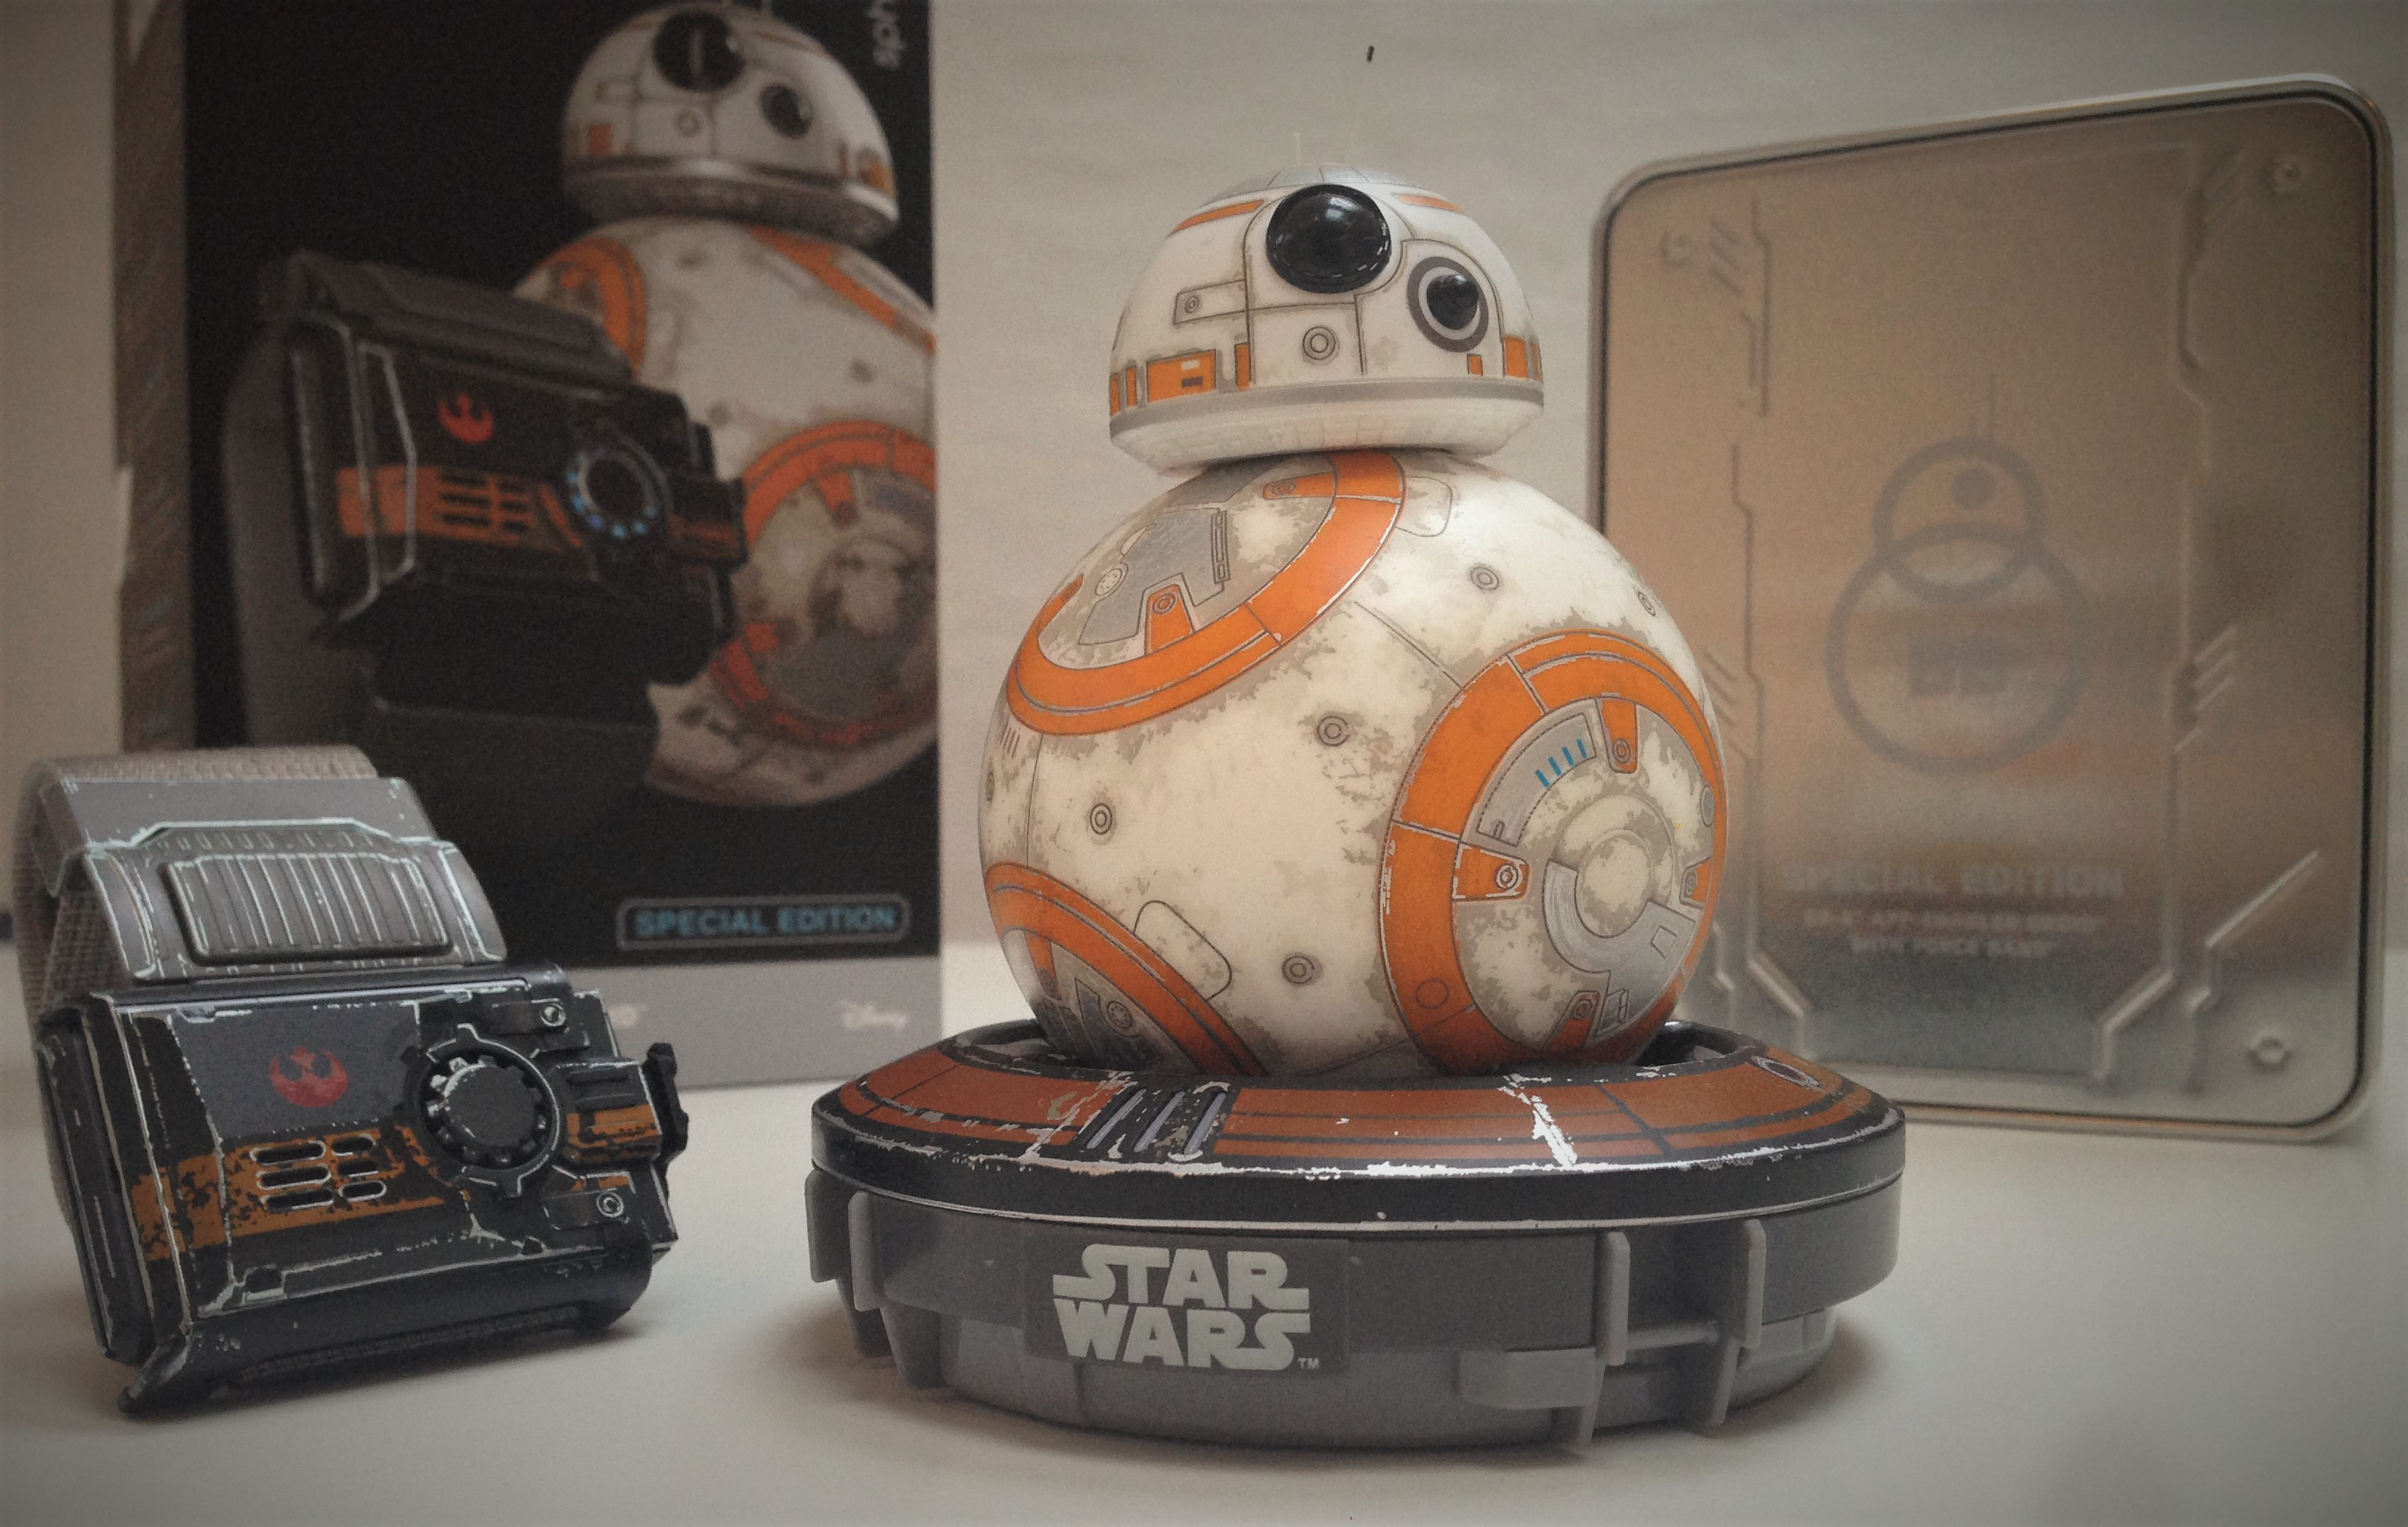 bb-8-star-wars-sphero-battle-worn-bb-8-disney-coolstuff-fiktion-kultur-4